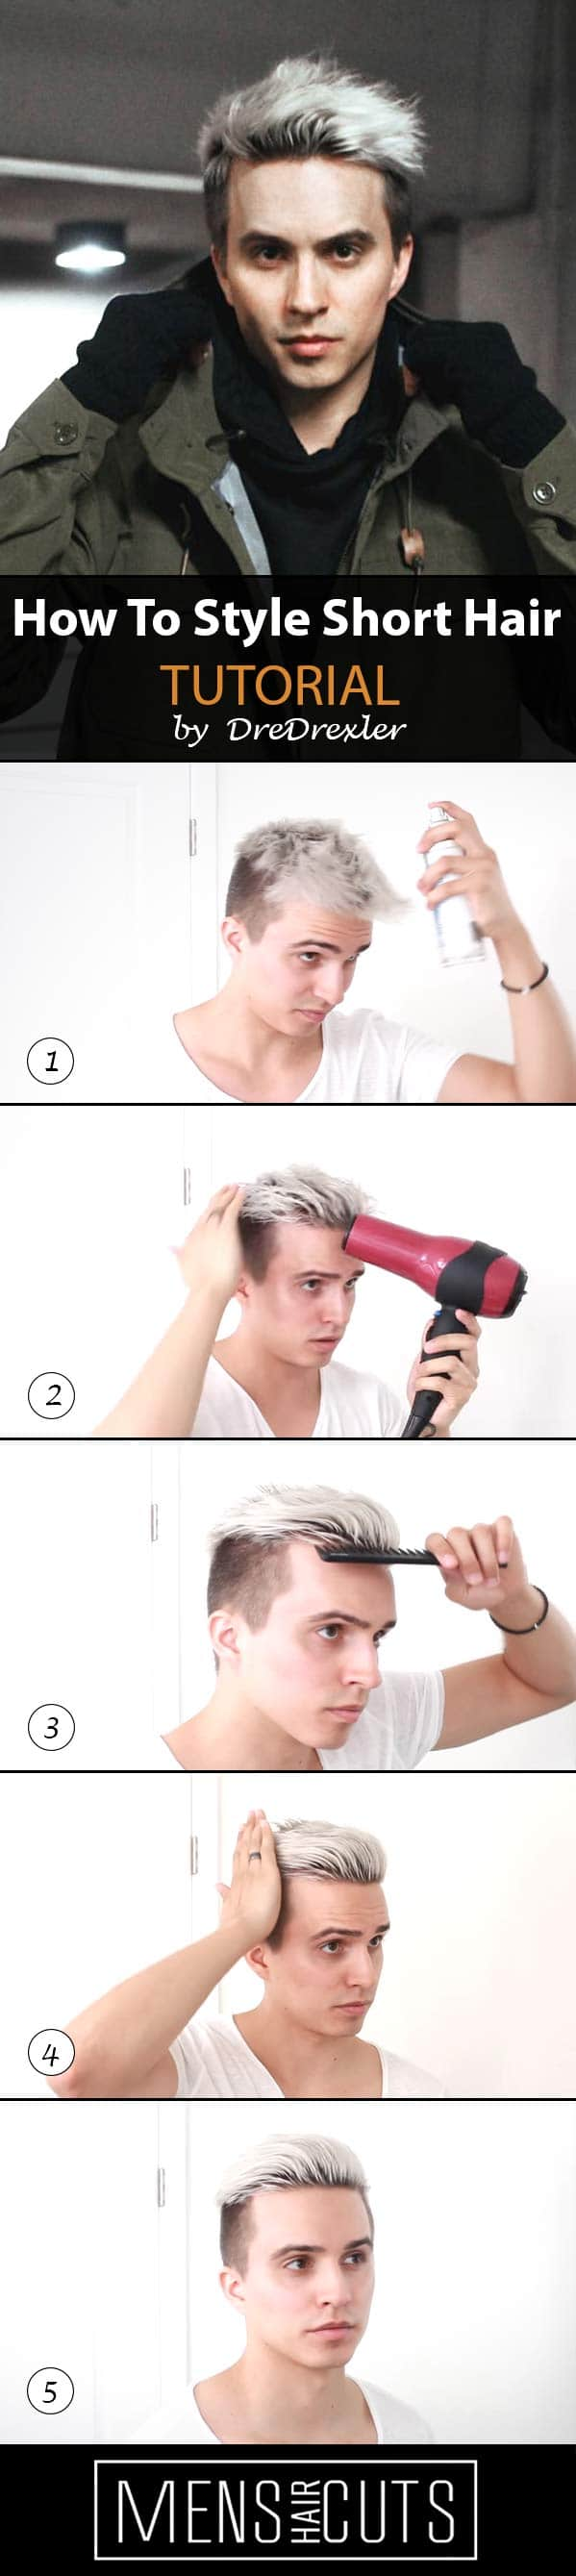 9 Ways How To Style Short Hair Step By Step Tutorials Menshaircuts